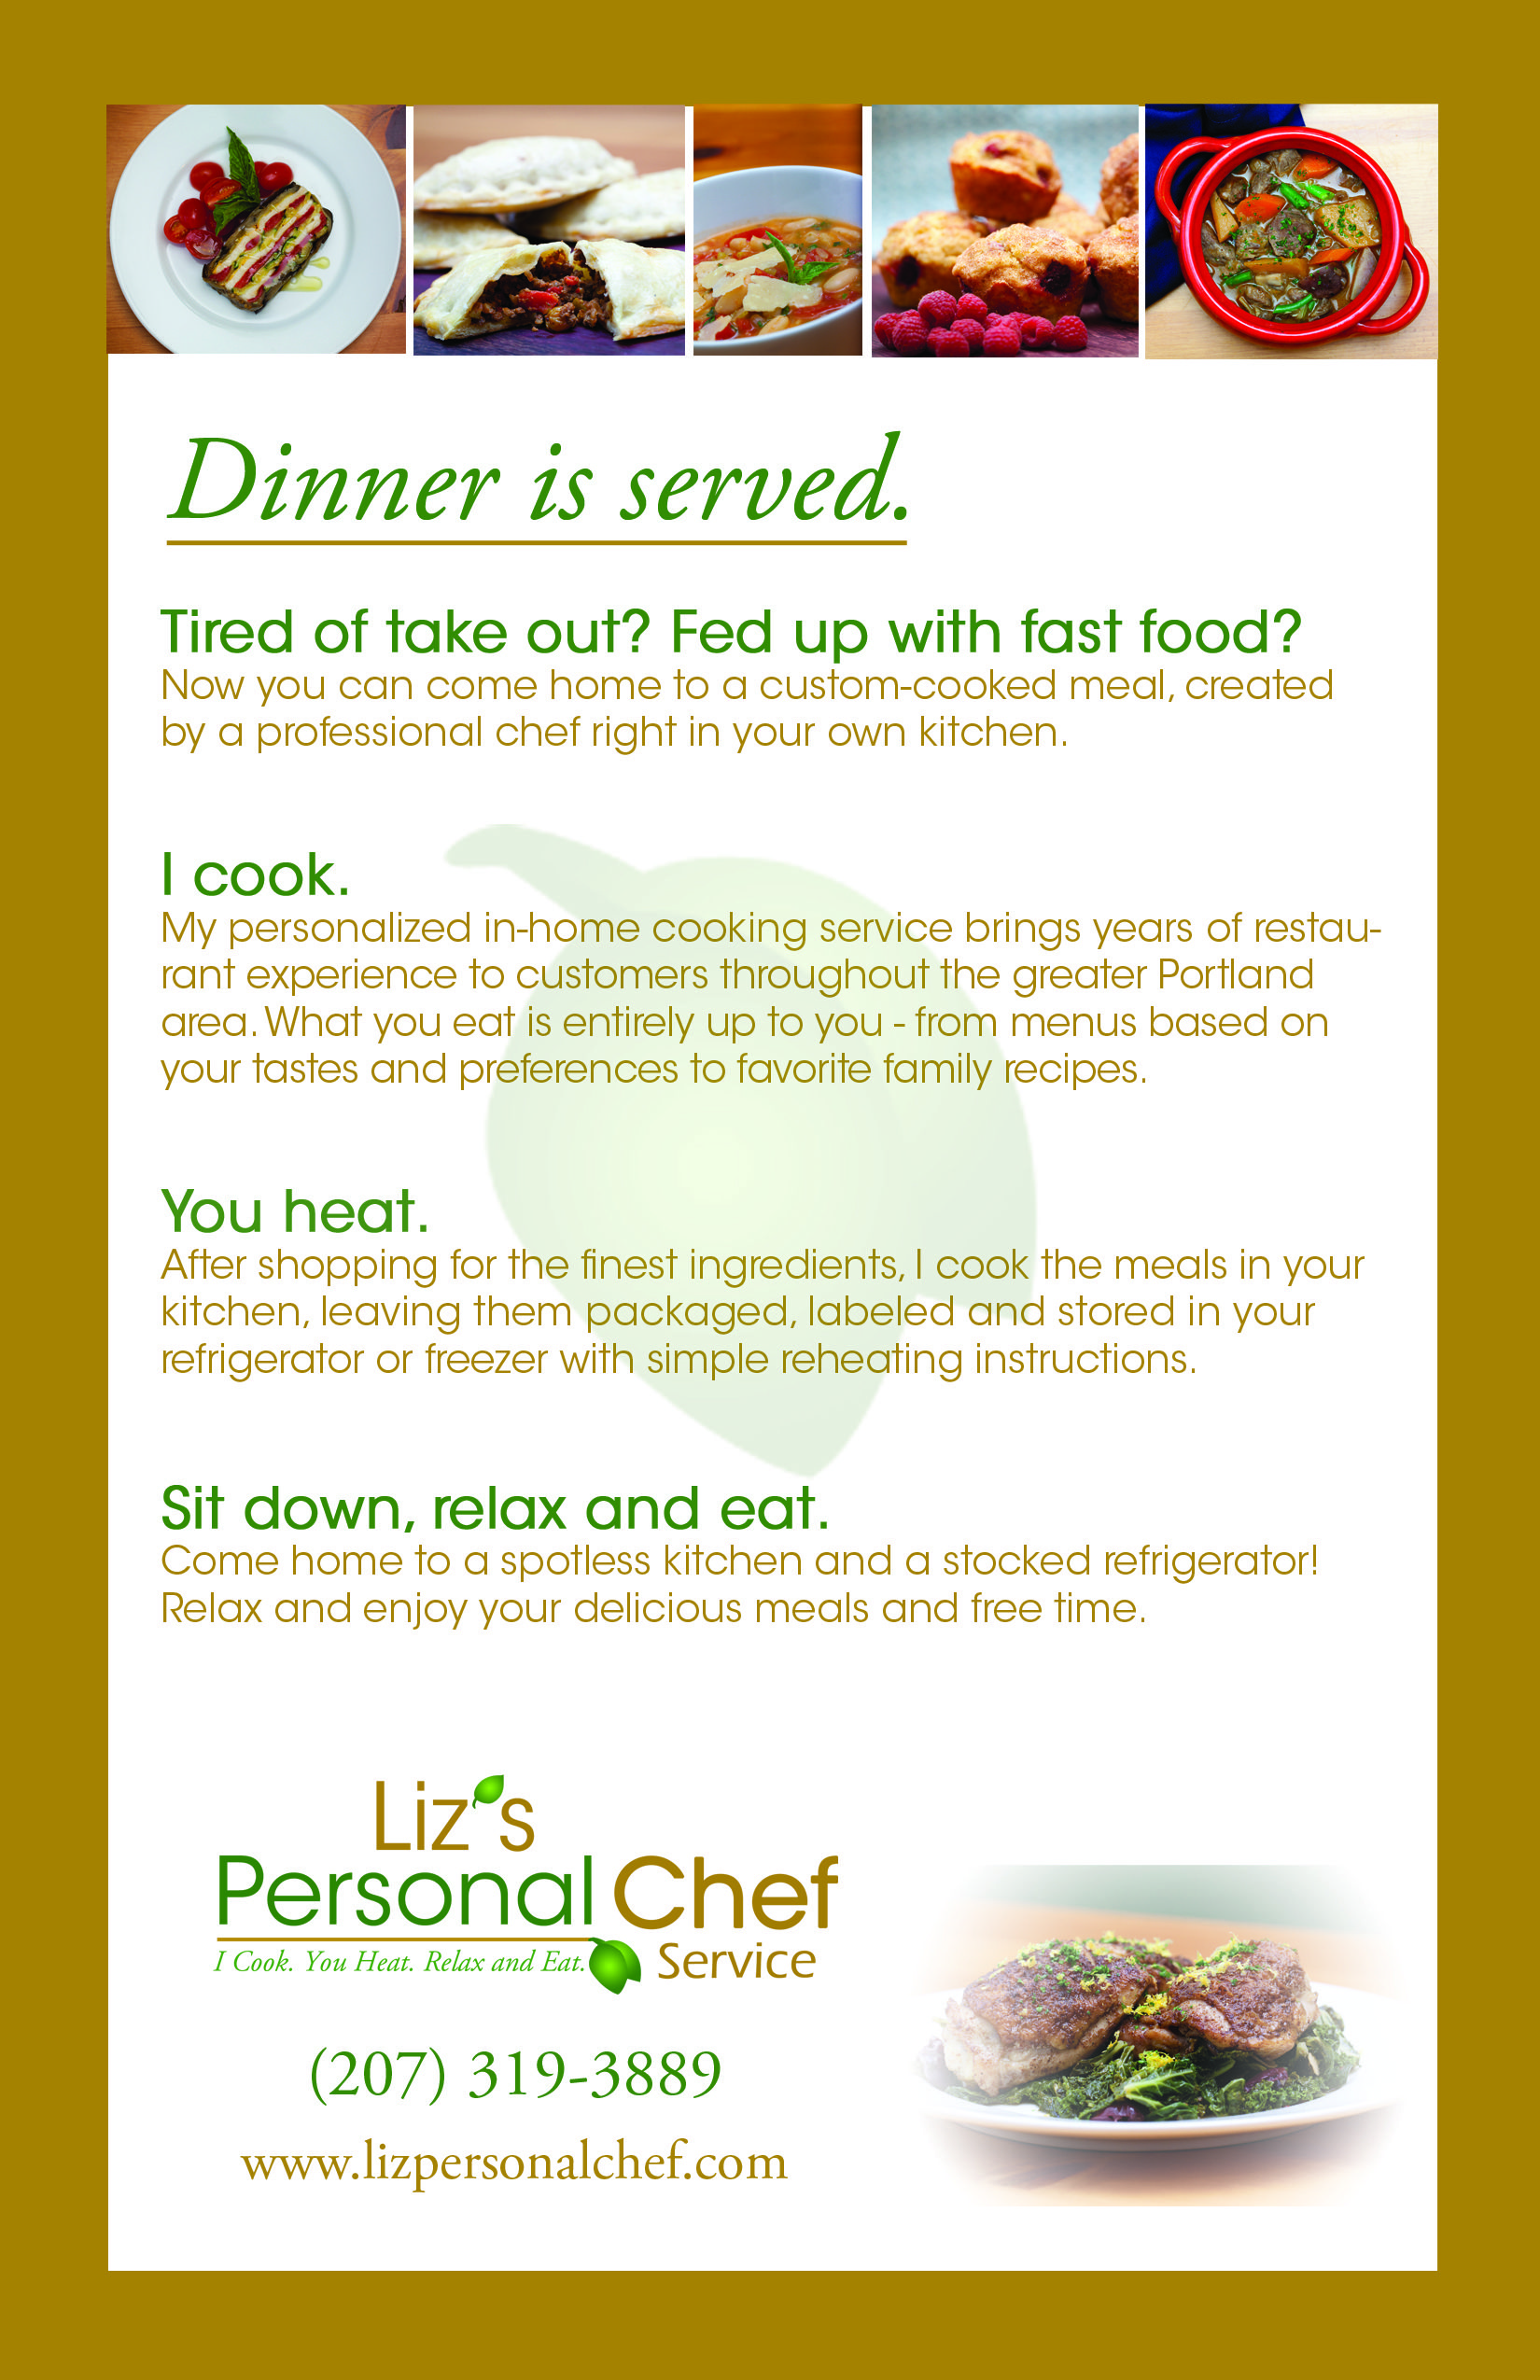 Brochure Post Card For Liz S Personal Chef Service Artwork By Graycatmarketing Com Personal Chef Business Personal Chef Service Personal Chef